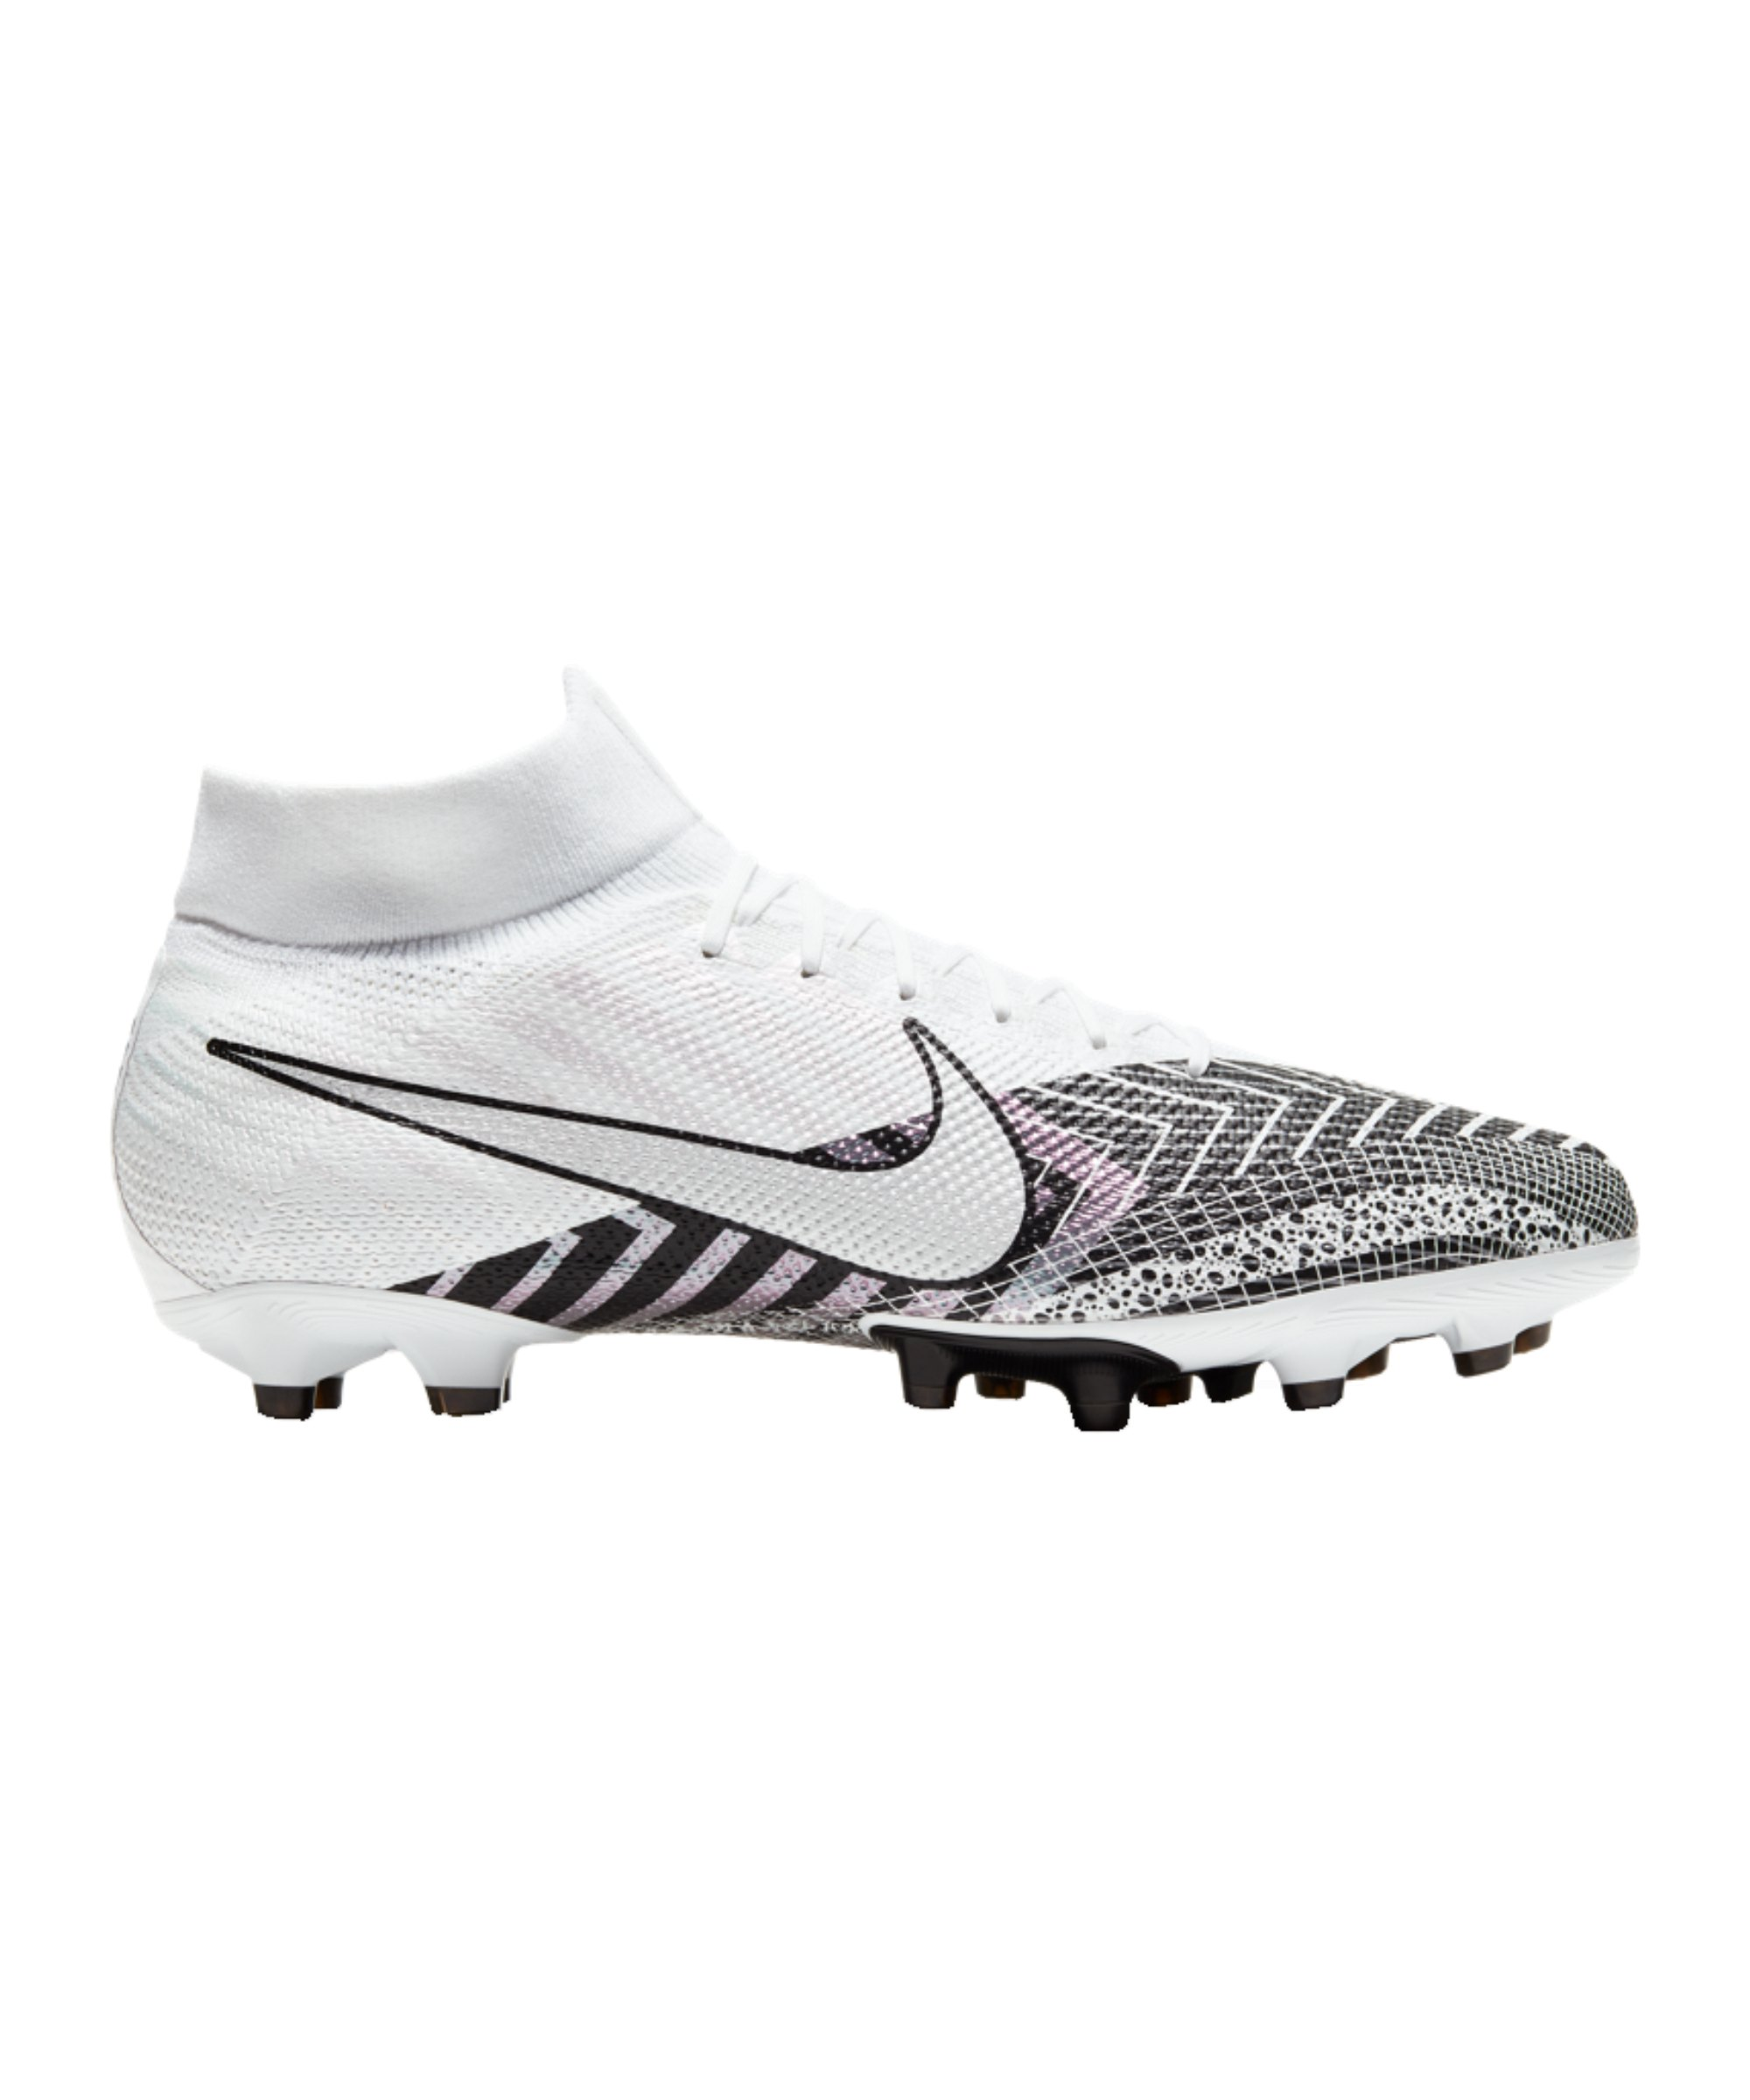 Nike Mercurial Superfly VII Dream Speed 3 Pro AG-Pro Weiss F110 - weiss